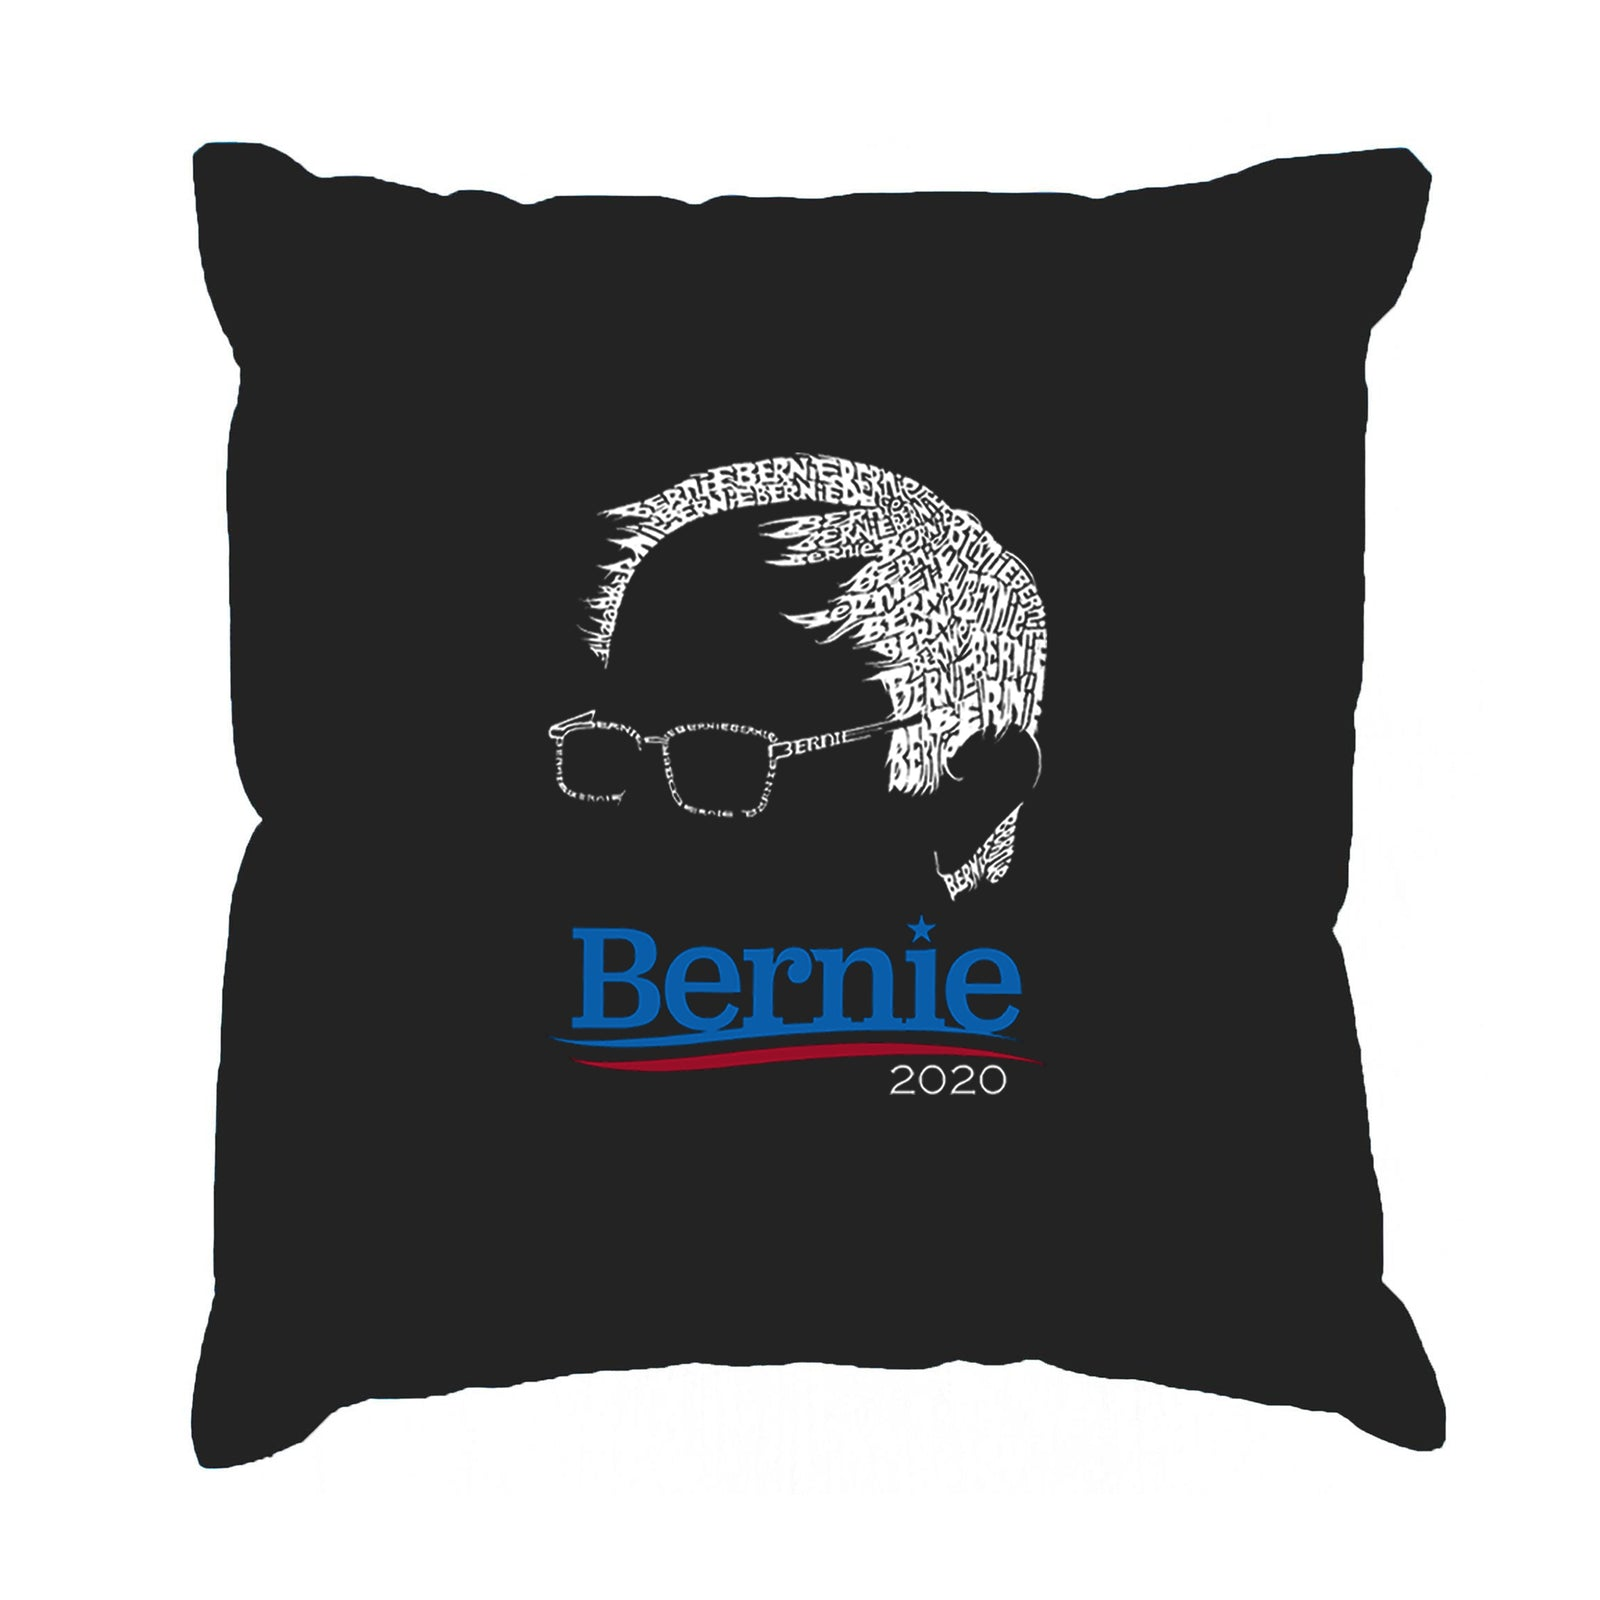 Throw Pillow Cover - Word Art - BERNIE